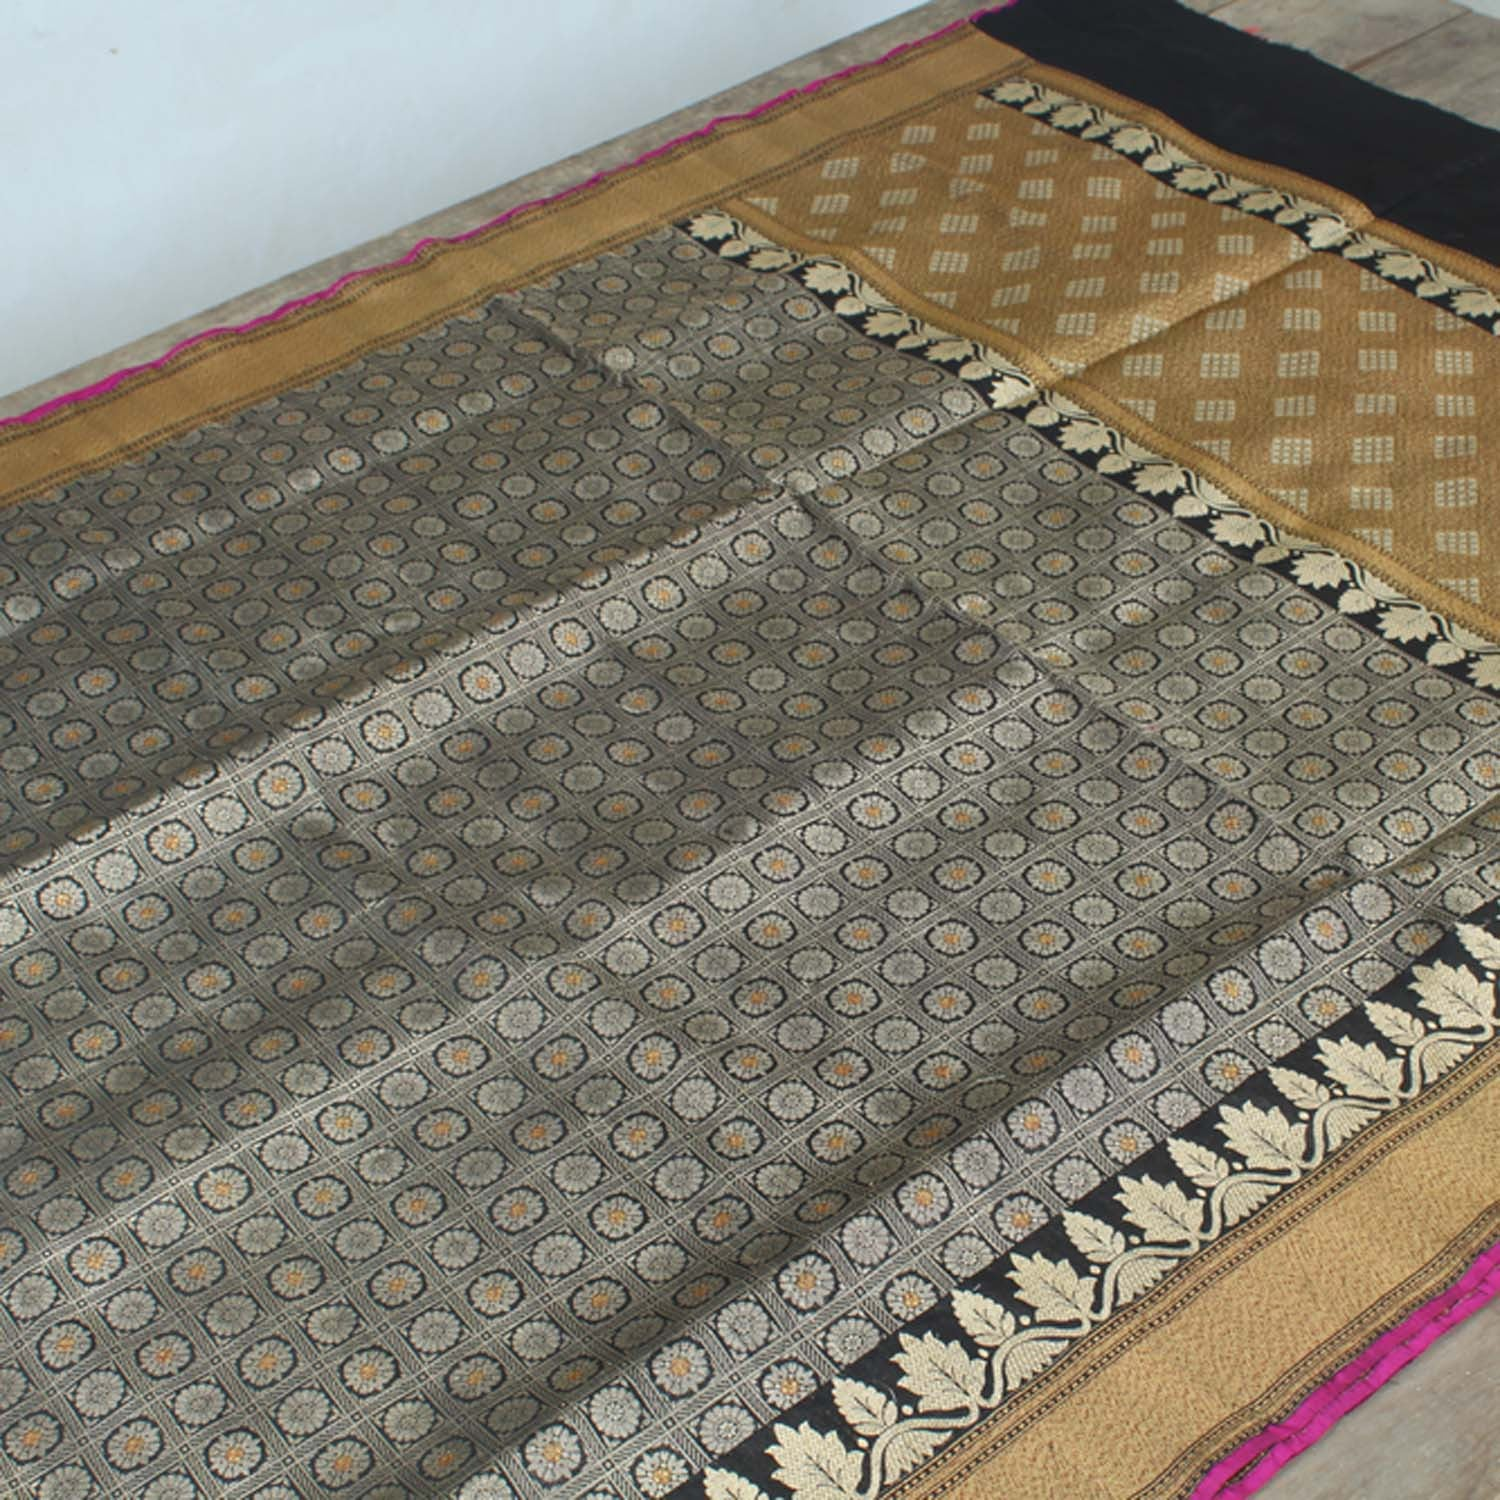 Black Pure Silk Georgette Handloom Banarasi Saree - Tilfi - 2